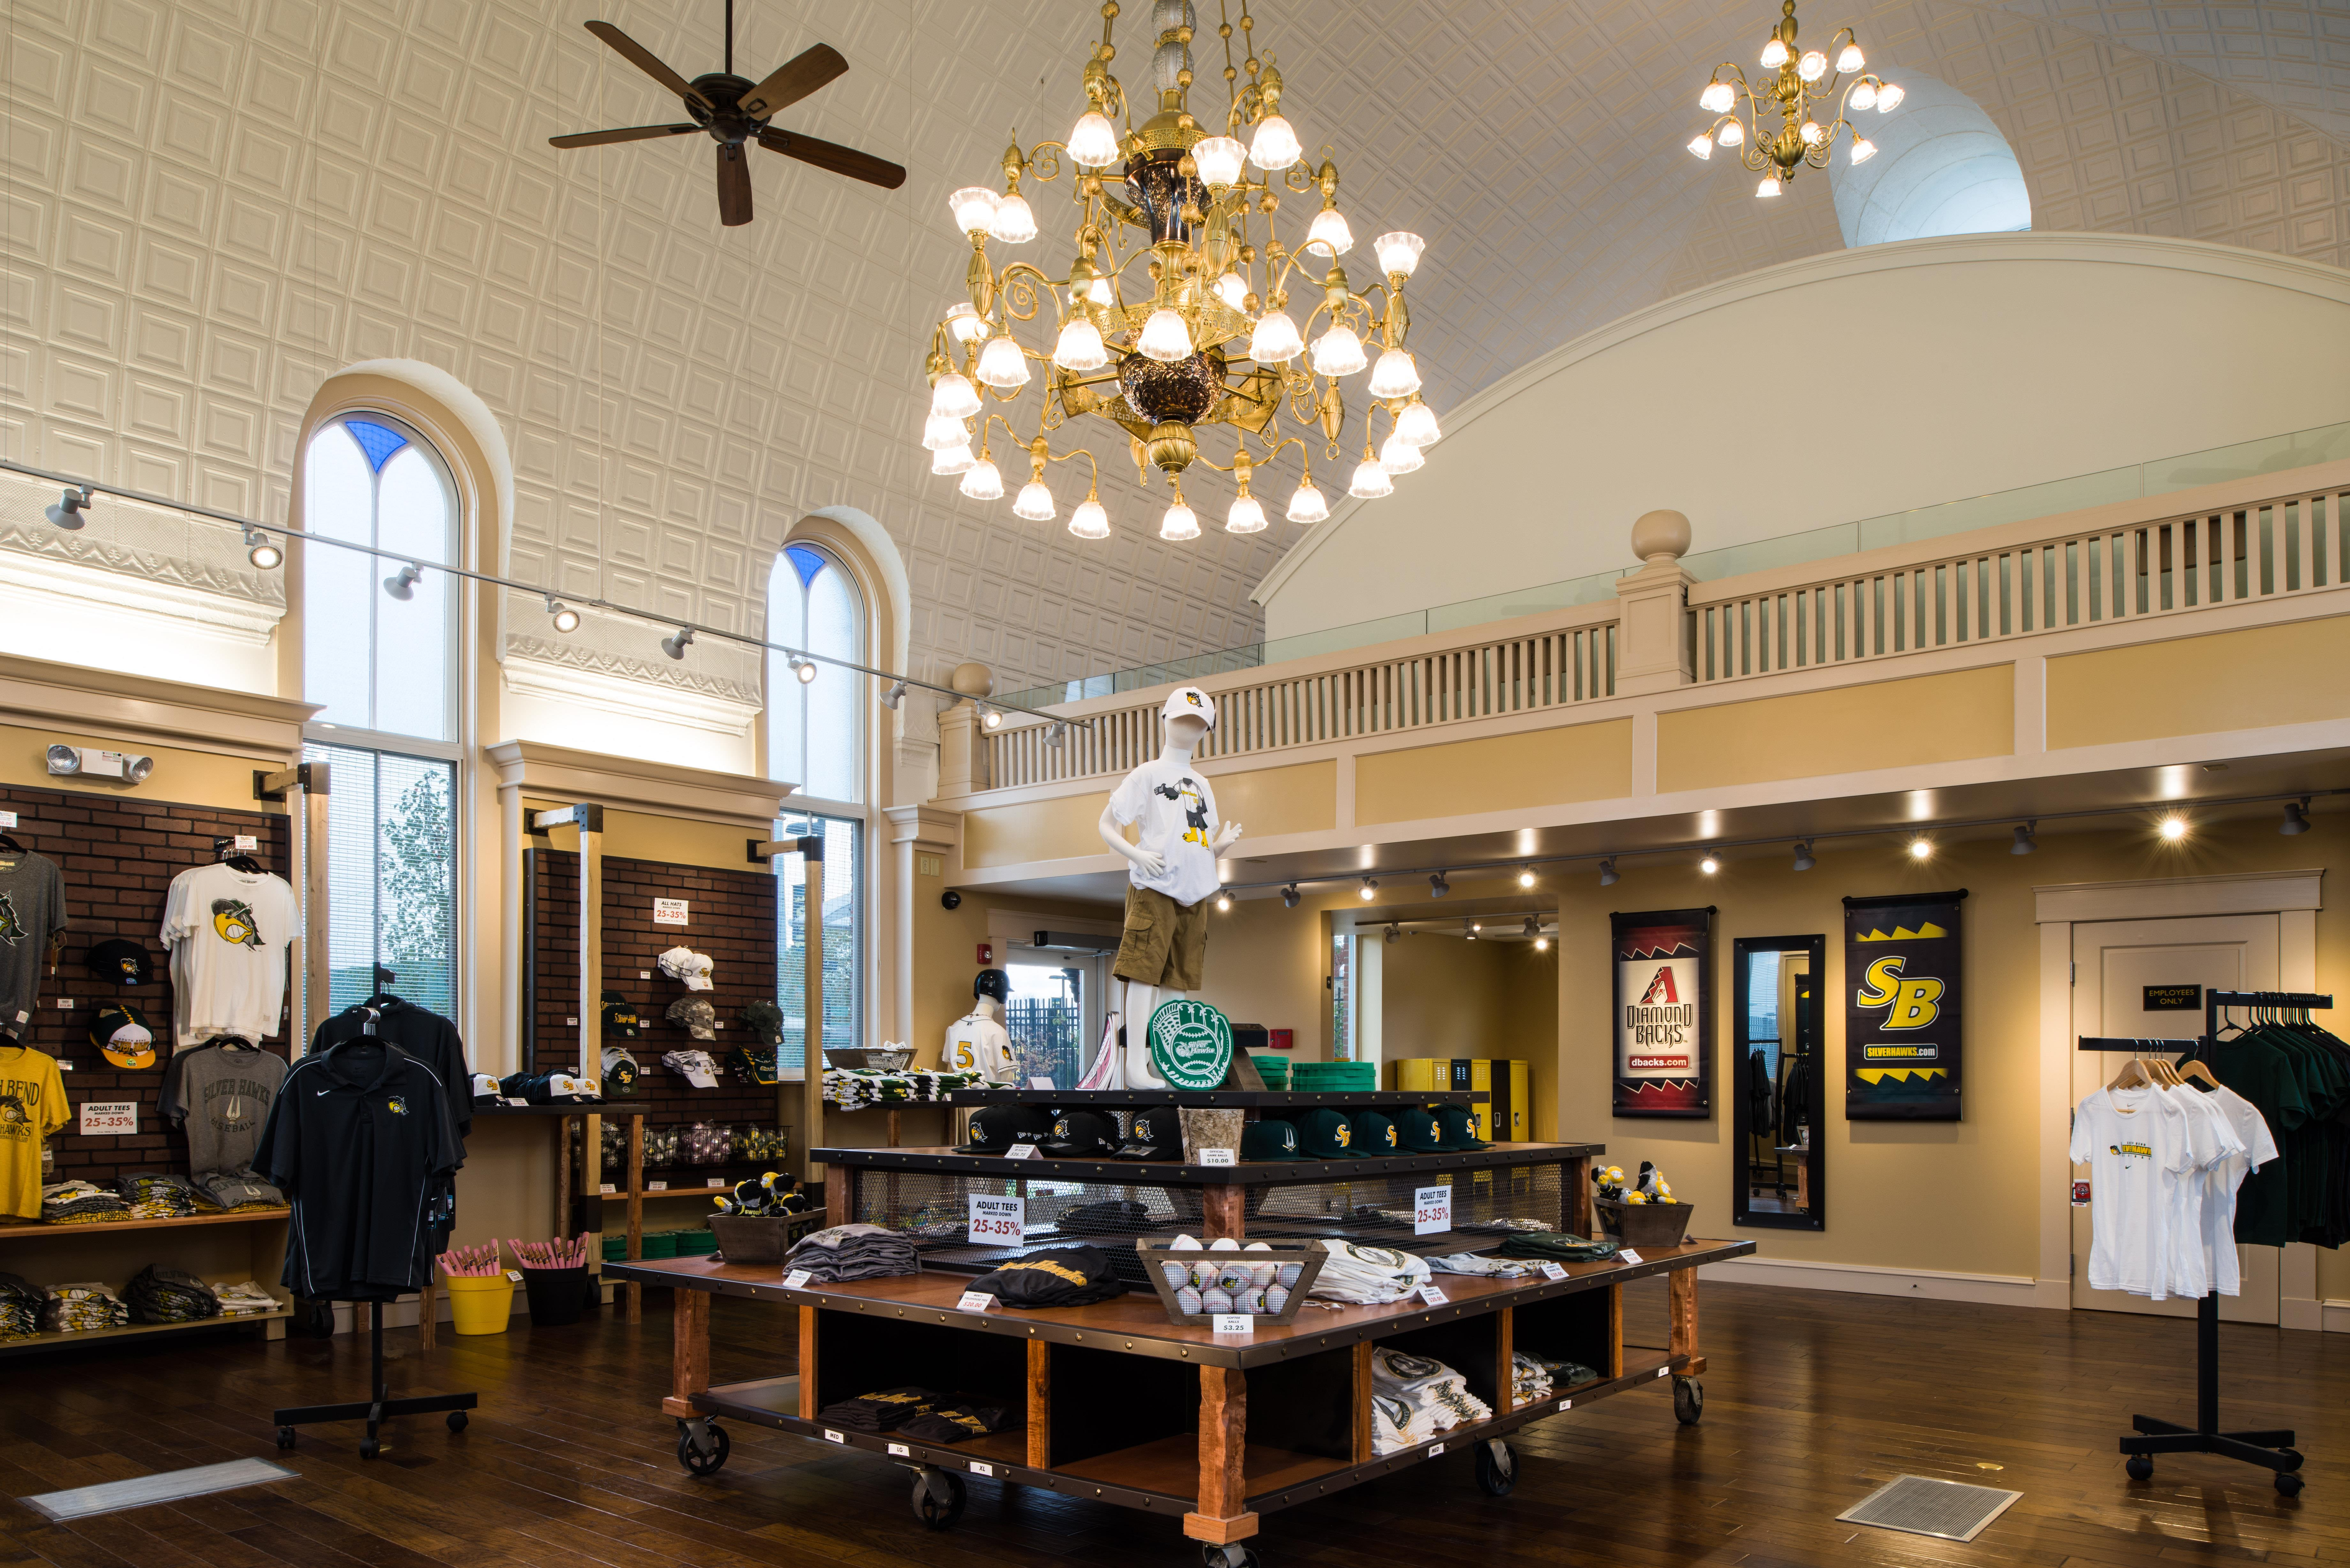 Image: The South Bend Silver Hawks' team store was formerly a Jewish synagogue.